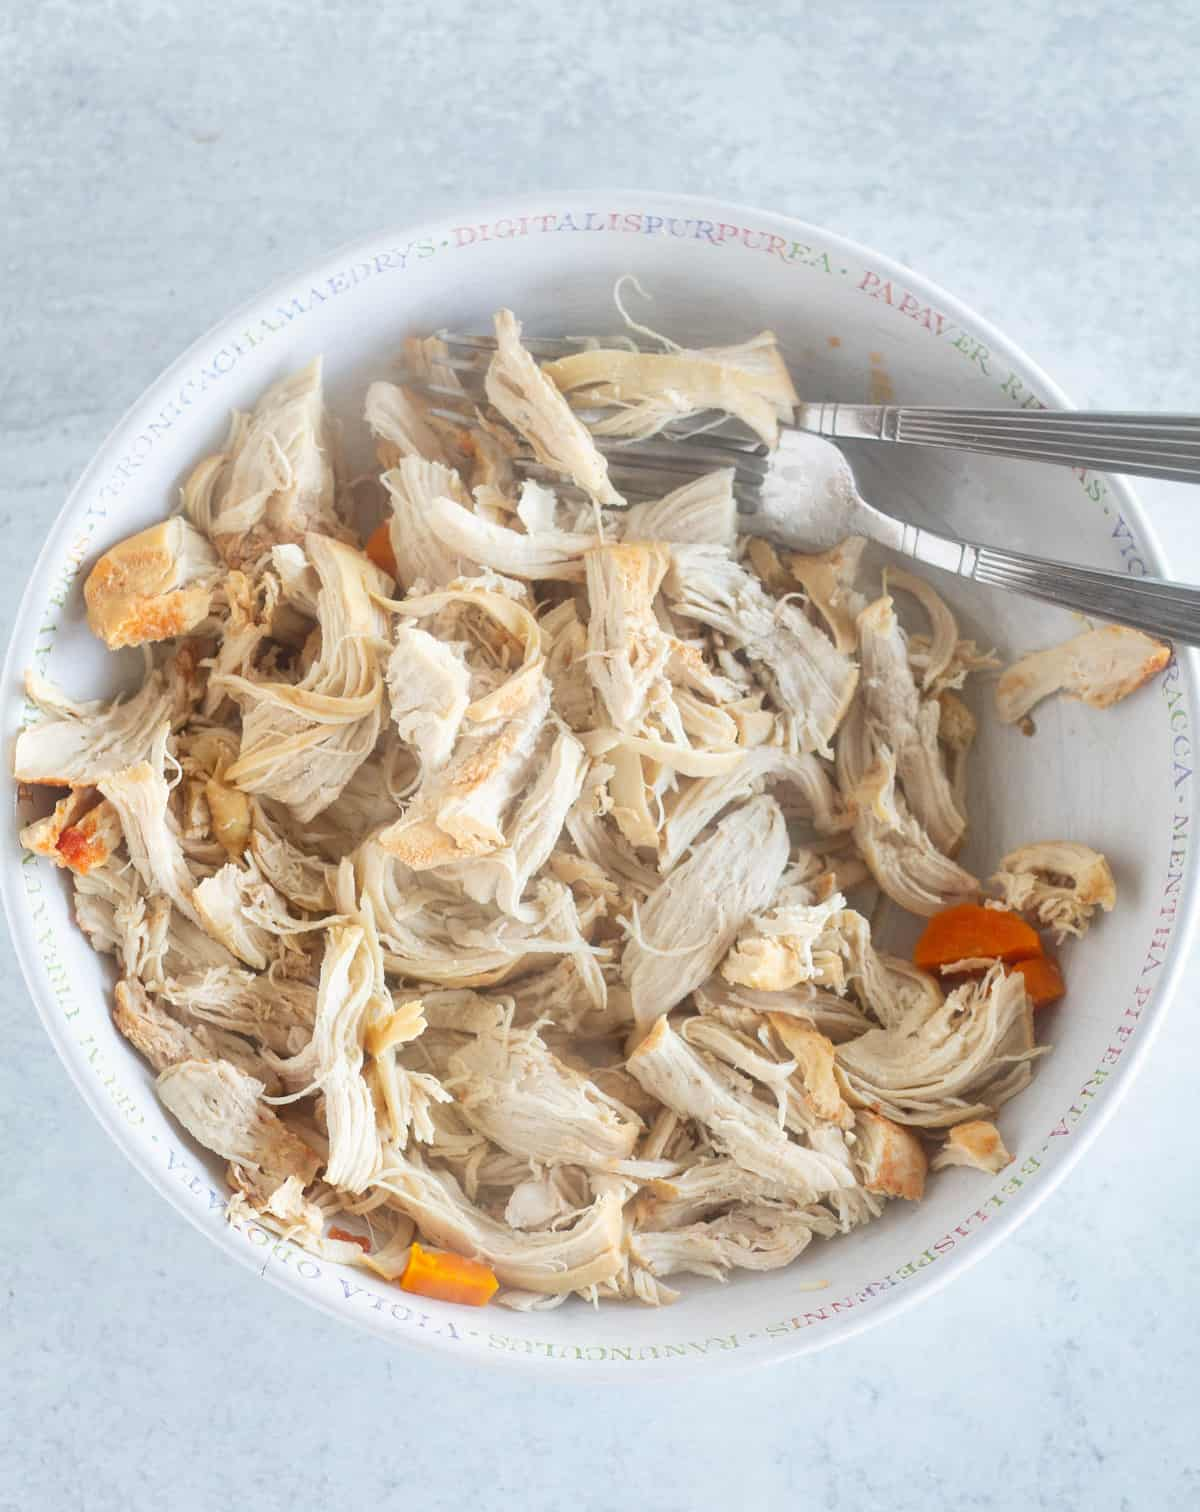 shredded chicken in large white bowl